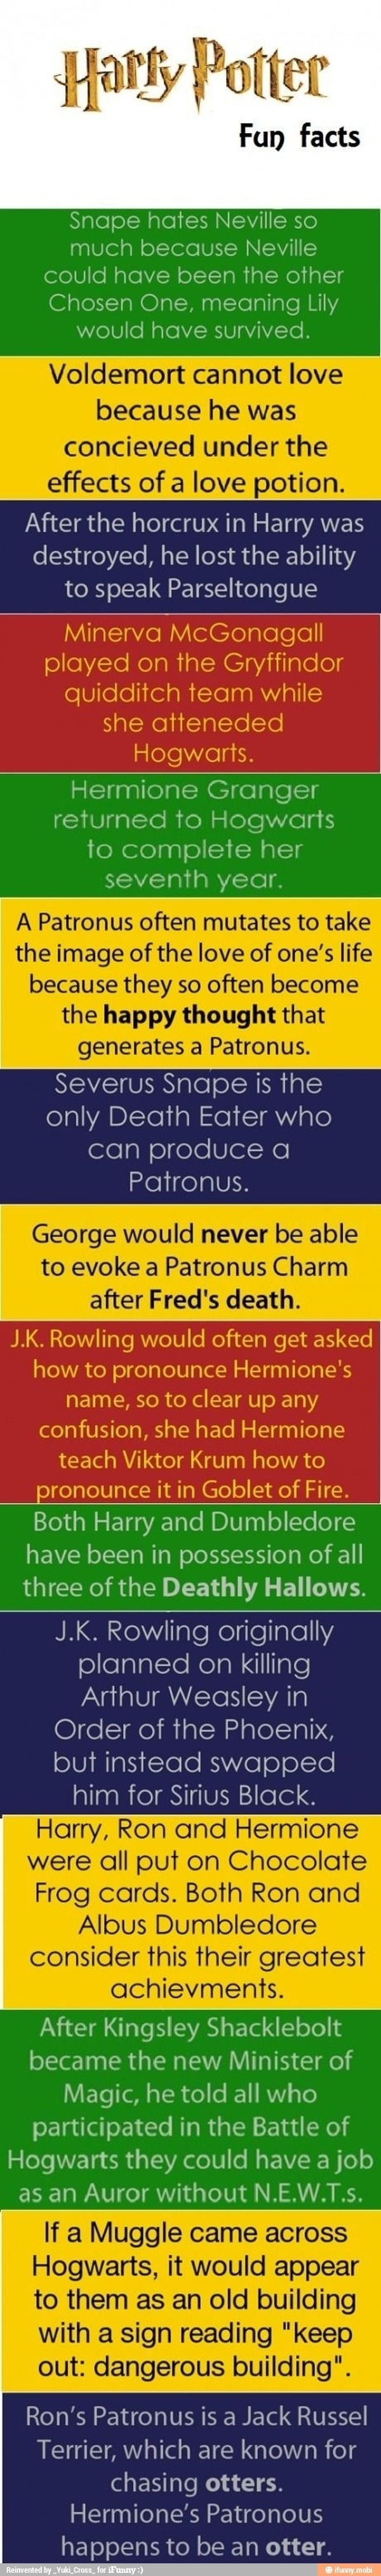 Harry Potter fun facts!!